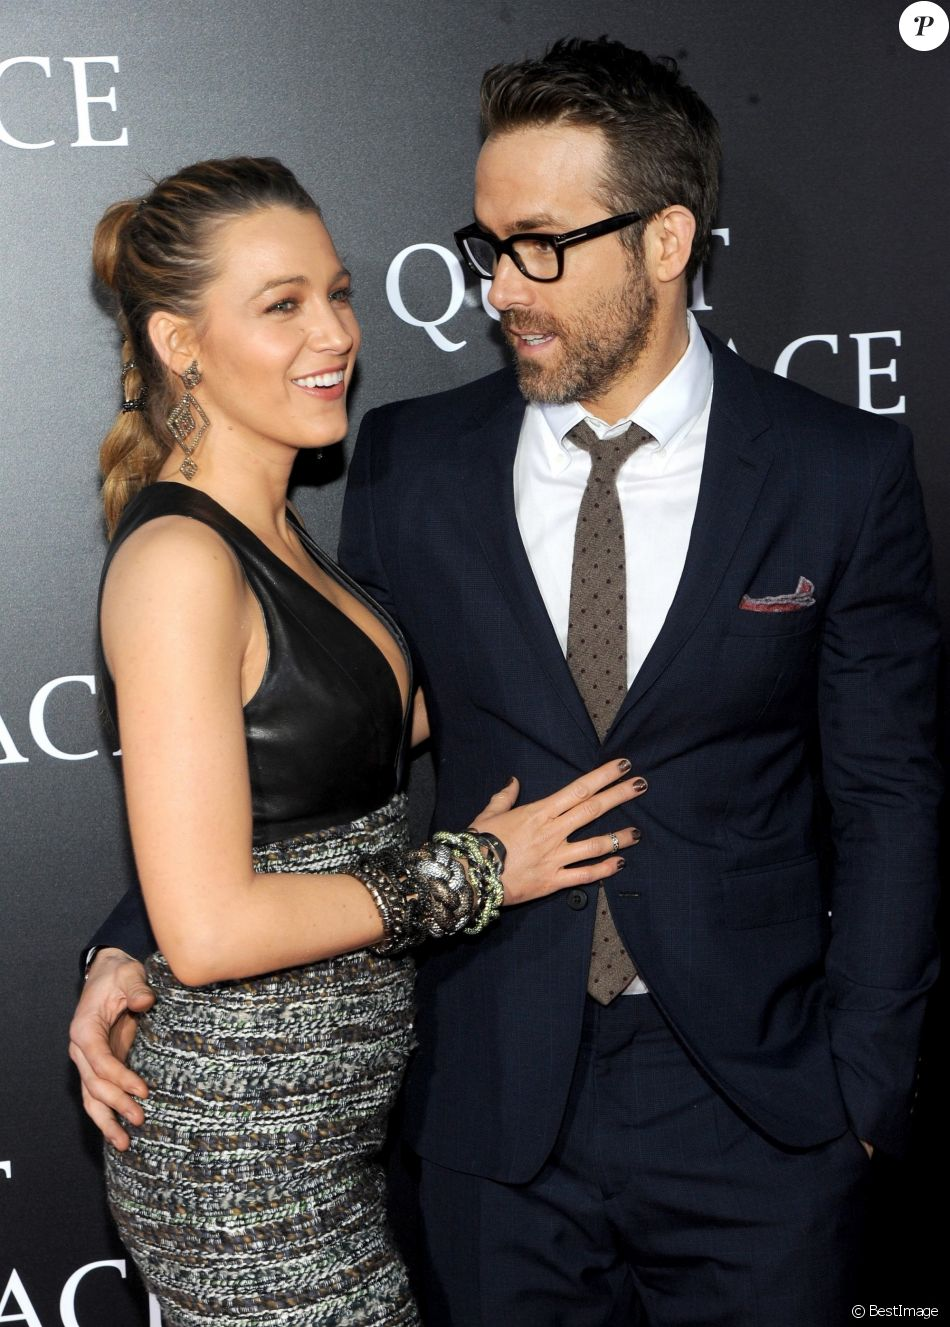 Blake Lively et Ryan Reynolds - Avant-première de 'A Quiet Place' au Loews Lincoln Square à New York. Le 2 avril 2018.